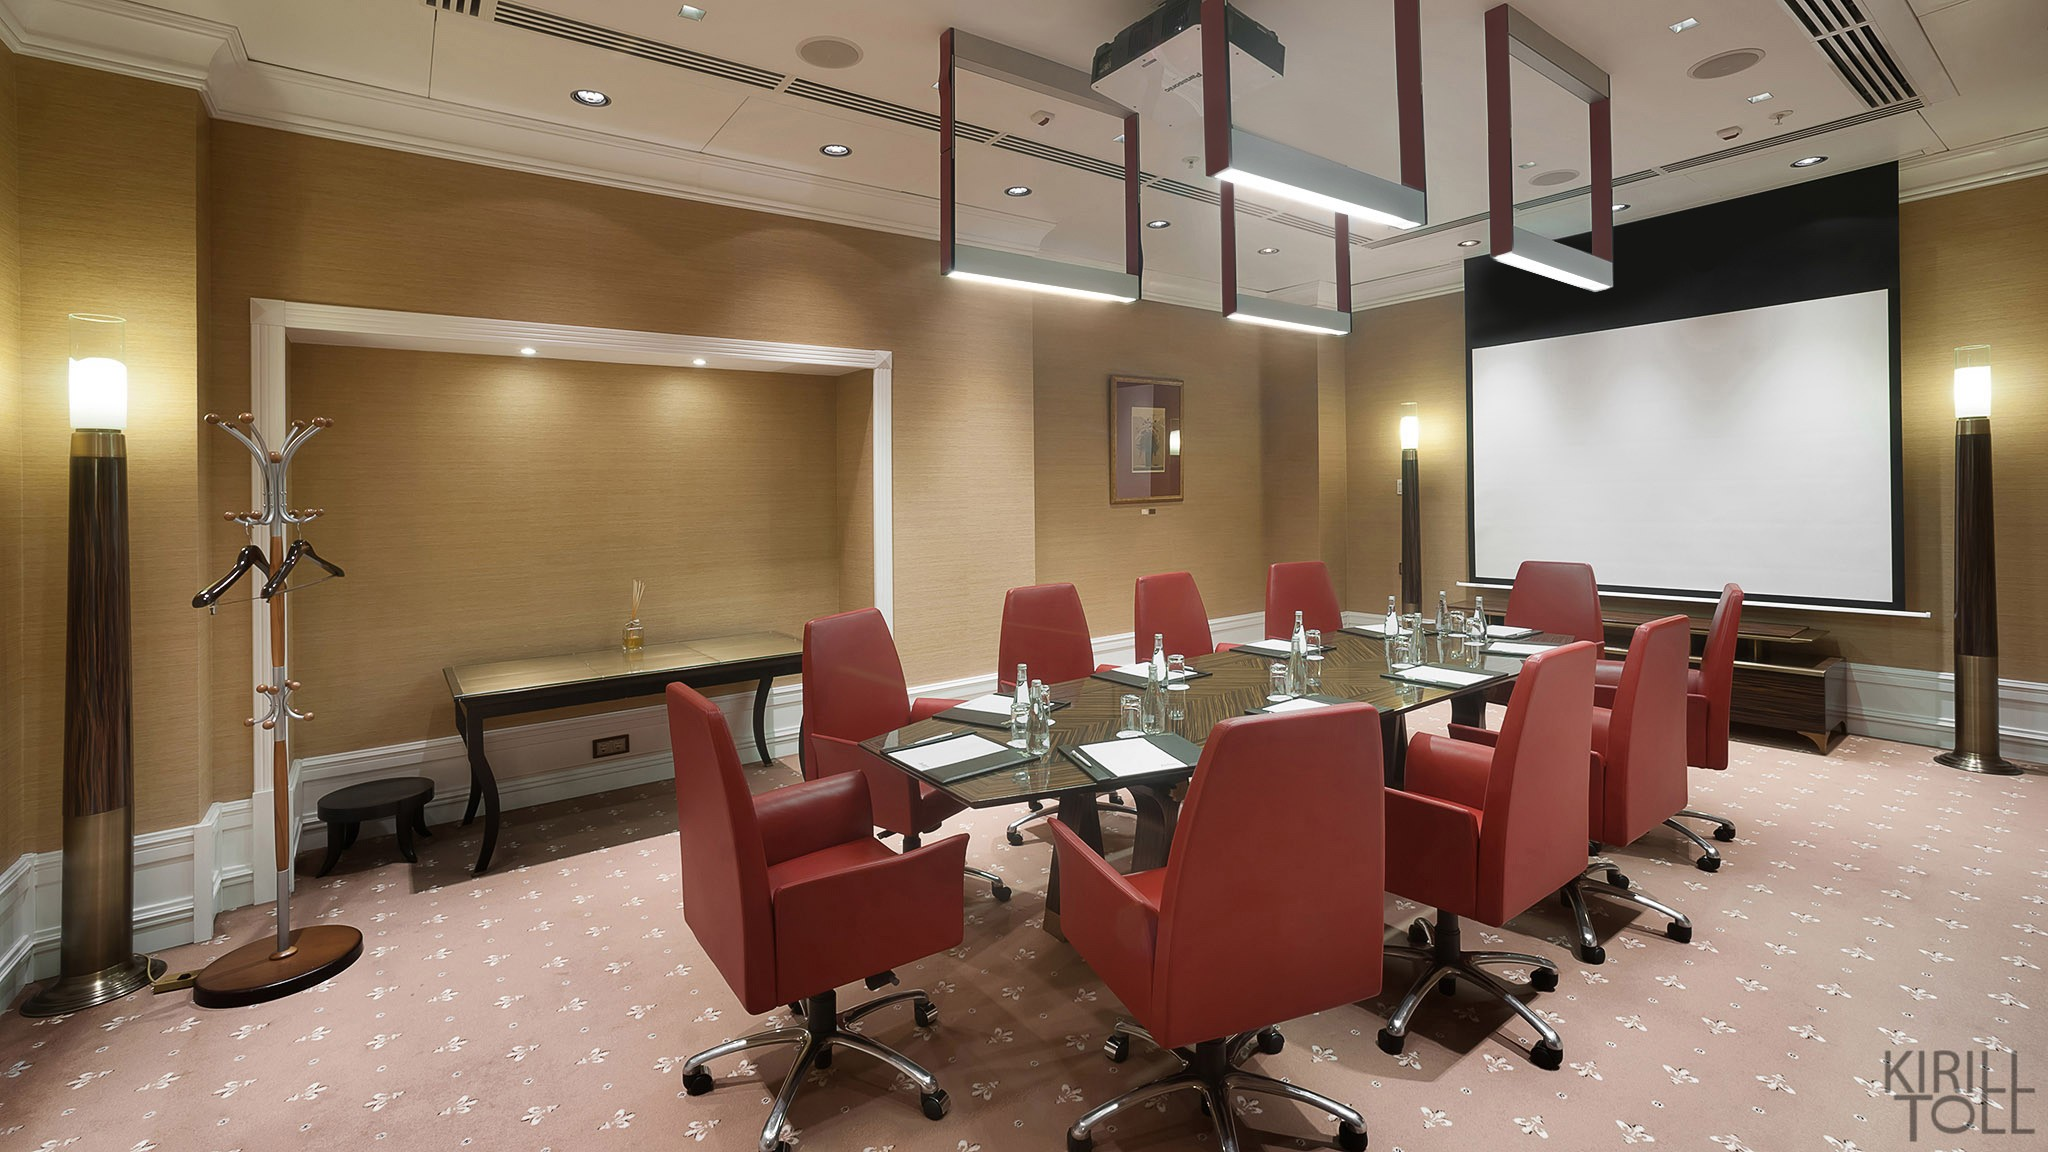 Photos of the interiors of the meeting rooms. Photographer Kirill Toll. Moscow